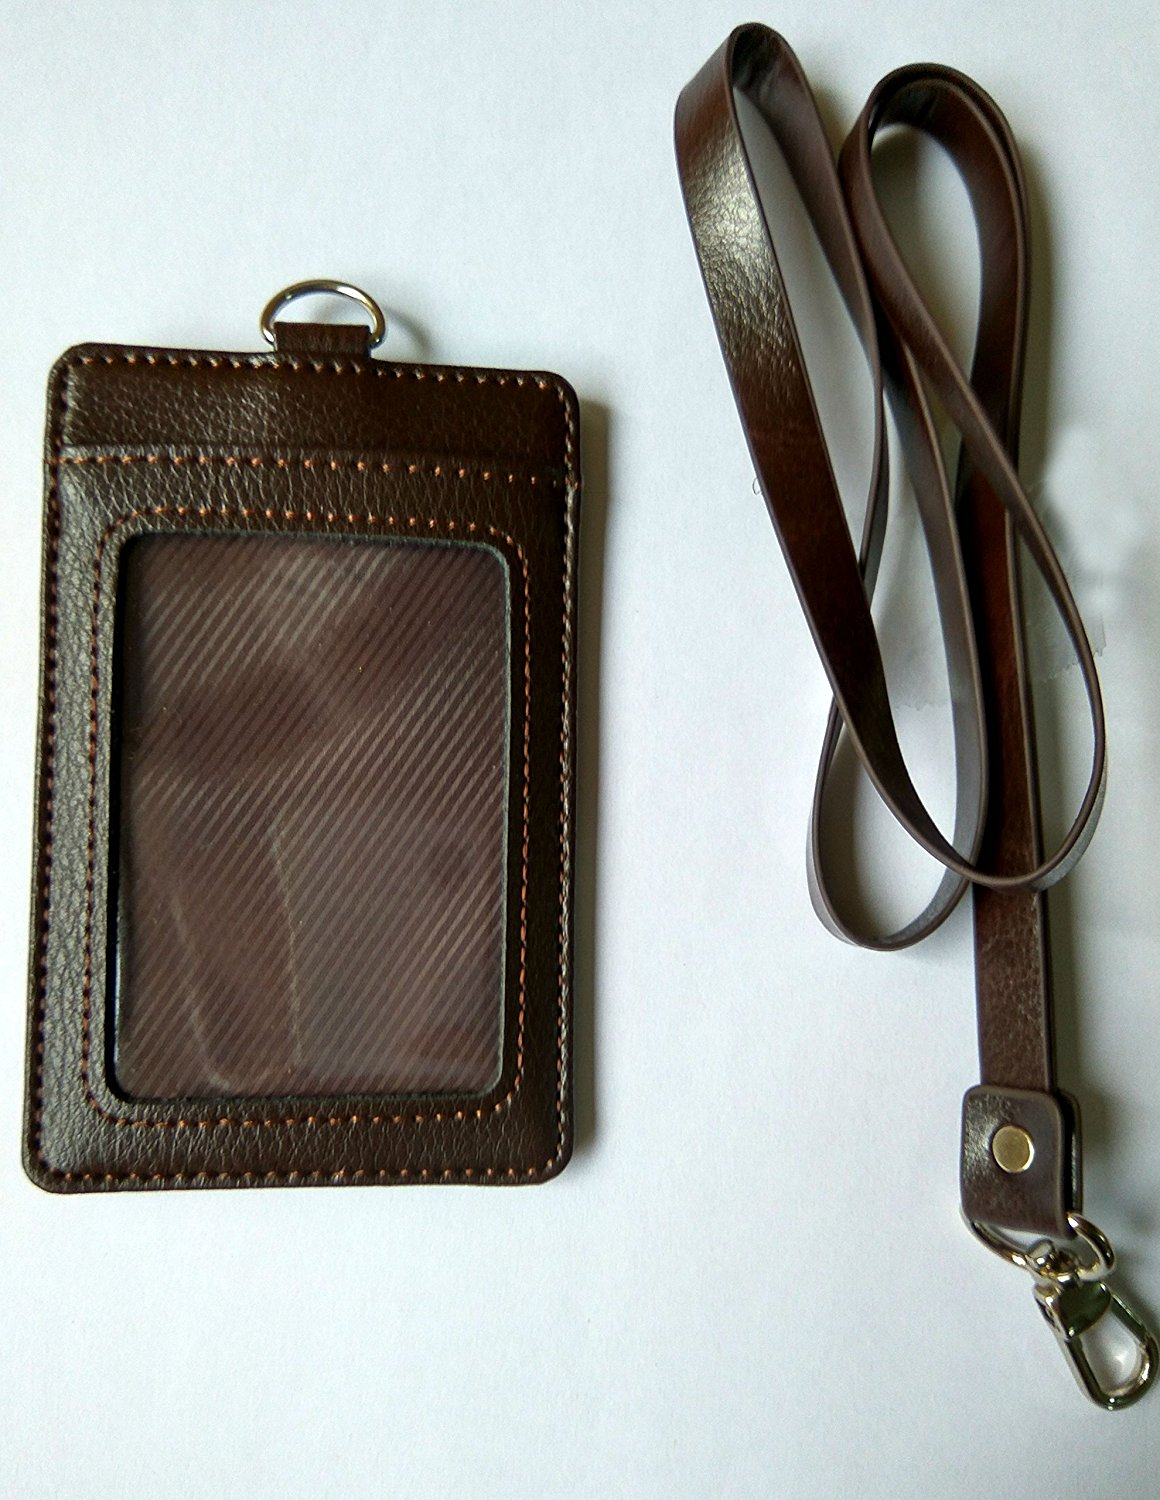 bcd6ab3de Get Quotations · AKOAK Litchi Grain Genuine Leather 2-Sided Vertical Credit  Card Holder Id Card Case Holder